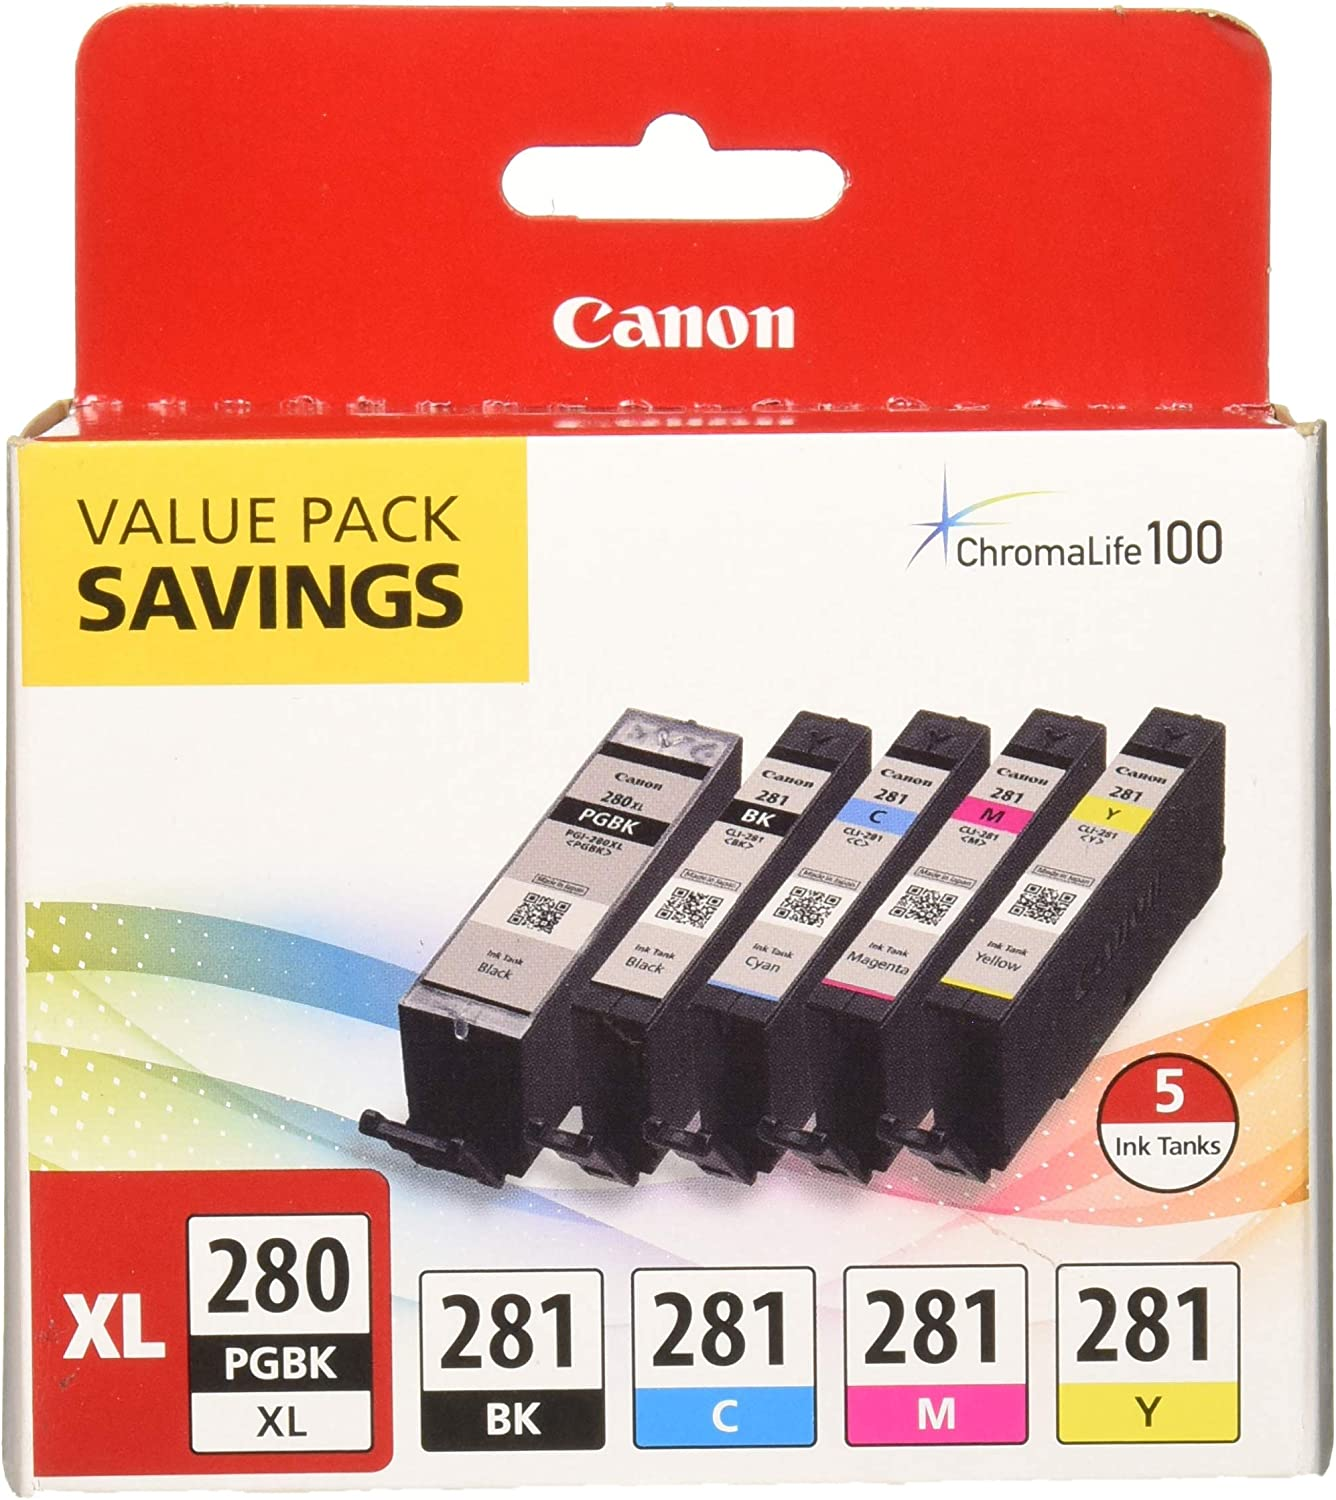 PIXMA TS9120 TS8120 TS6120 TR7520 TR8520 TS9120 JinHan 24 Pack Replacement for Canon PGI-280 CLI-281 PGI-280XXL CLI-281 XXL Compatible Ink Cartridge 5-Color Ink Tank Combo Pack Compatible to